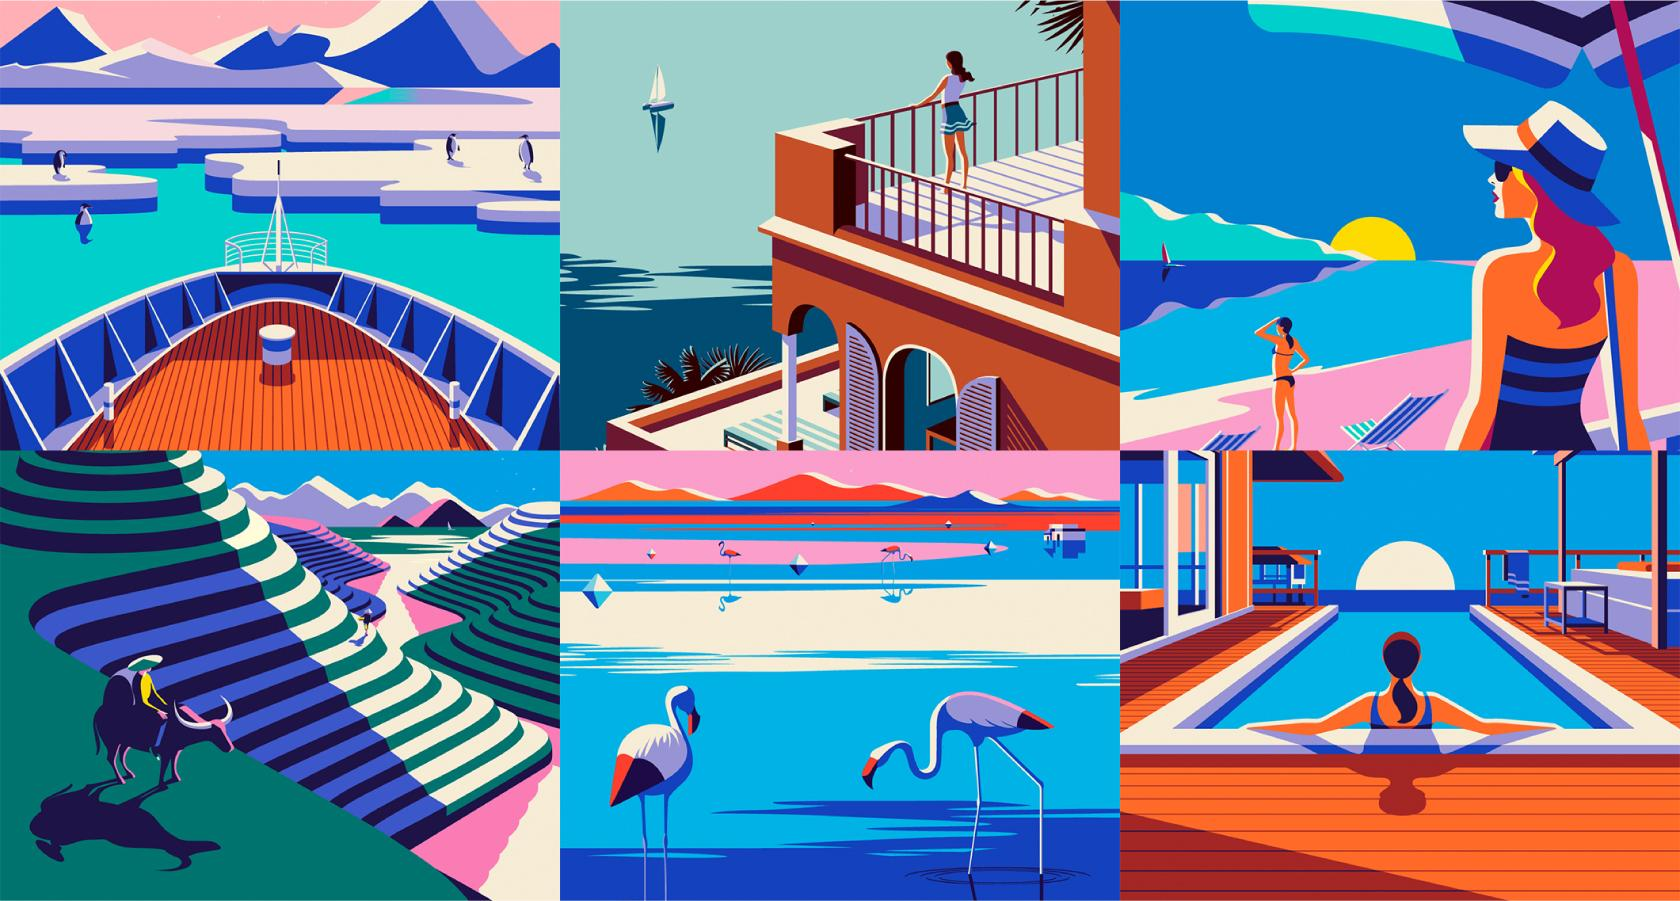 Advertising illustration system for Kuoni Travel Website France by Malika Favre